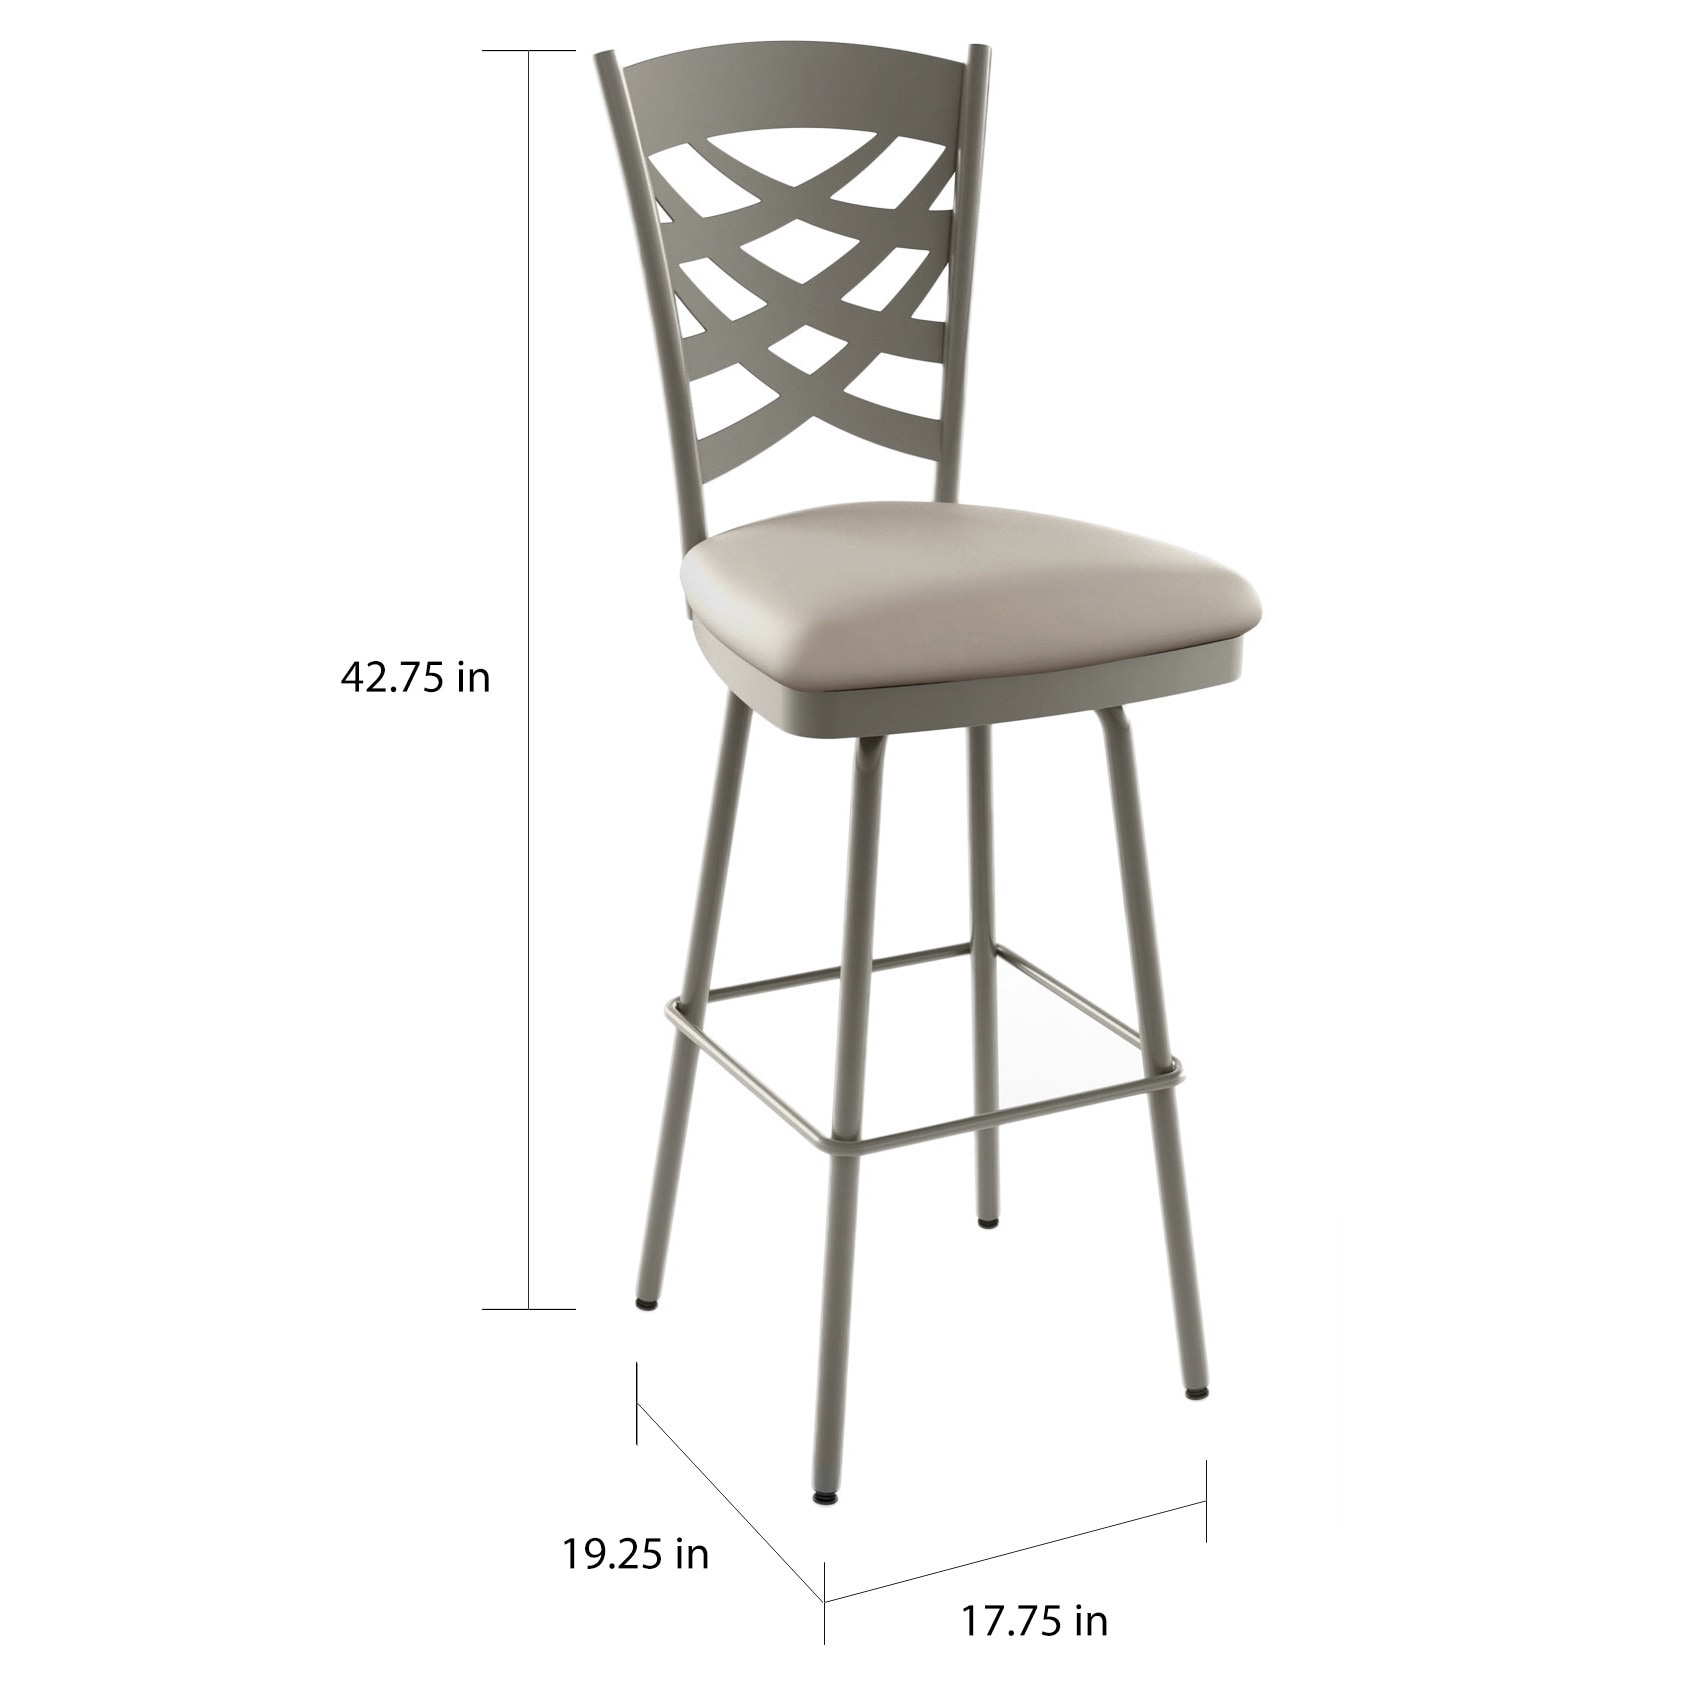 Prime Amisco Nest 26 Inch Metal Swivel Counter Stool Bralicious Painted Fabric Chair Ideas Braliciousco